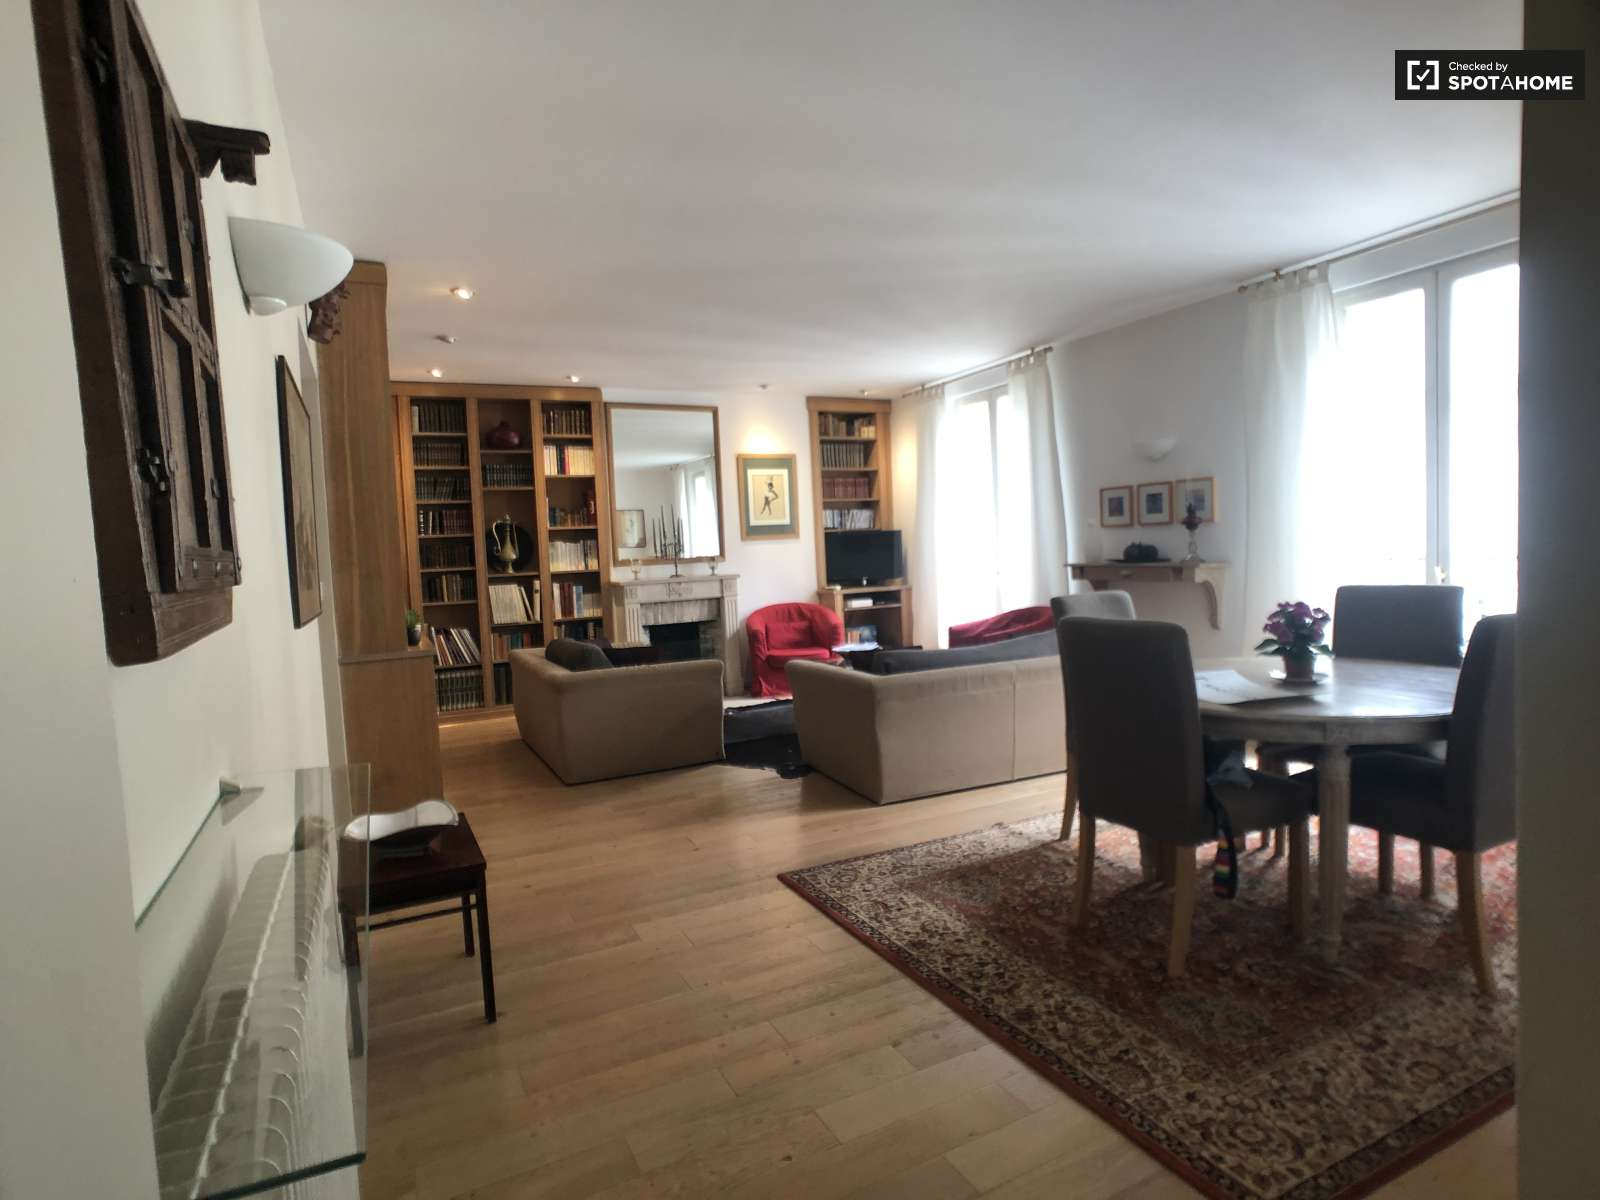 Wondrous Spacious And Sunny 2 Bedroom Apartment For Rent In Paris 18 Beutiful Home Inspiration Xortanetmahrainfo